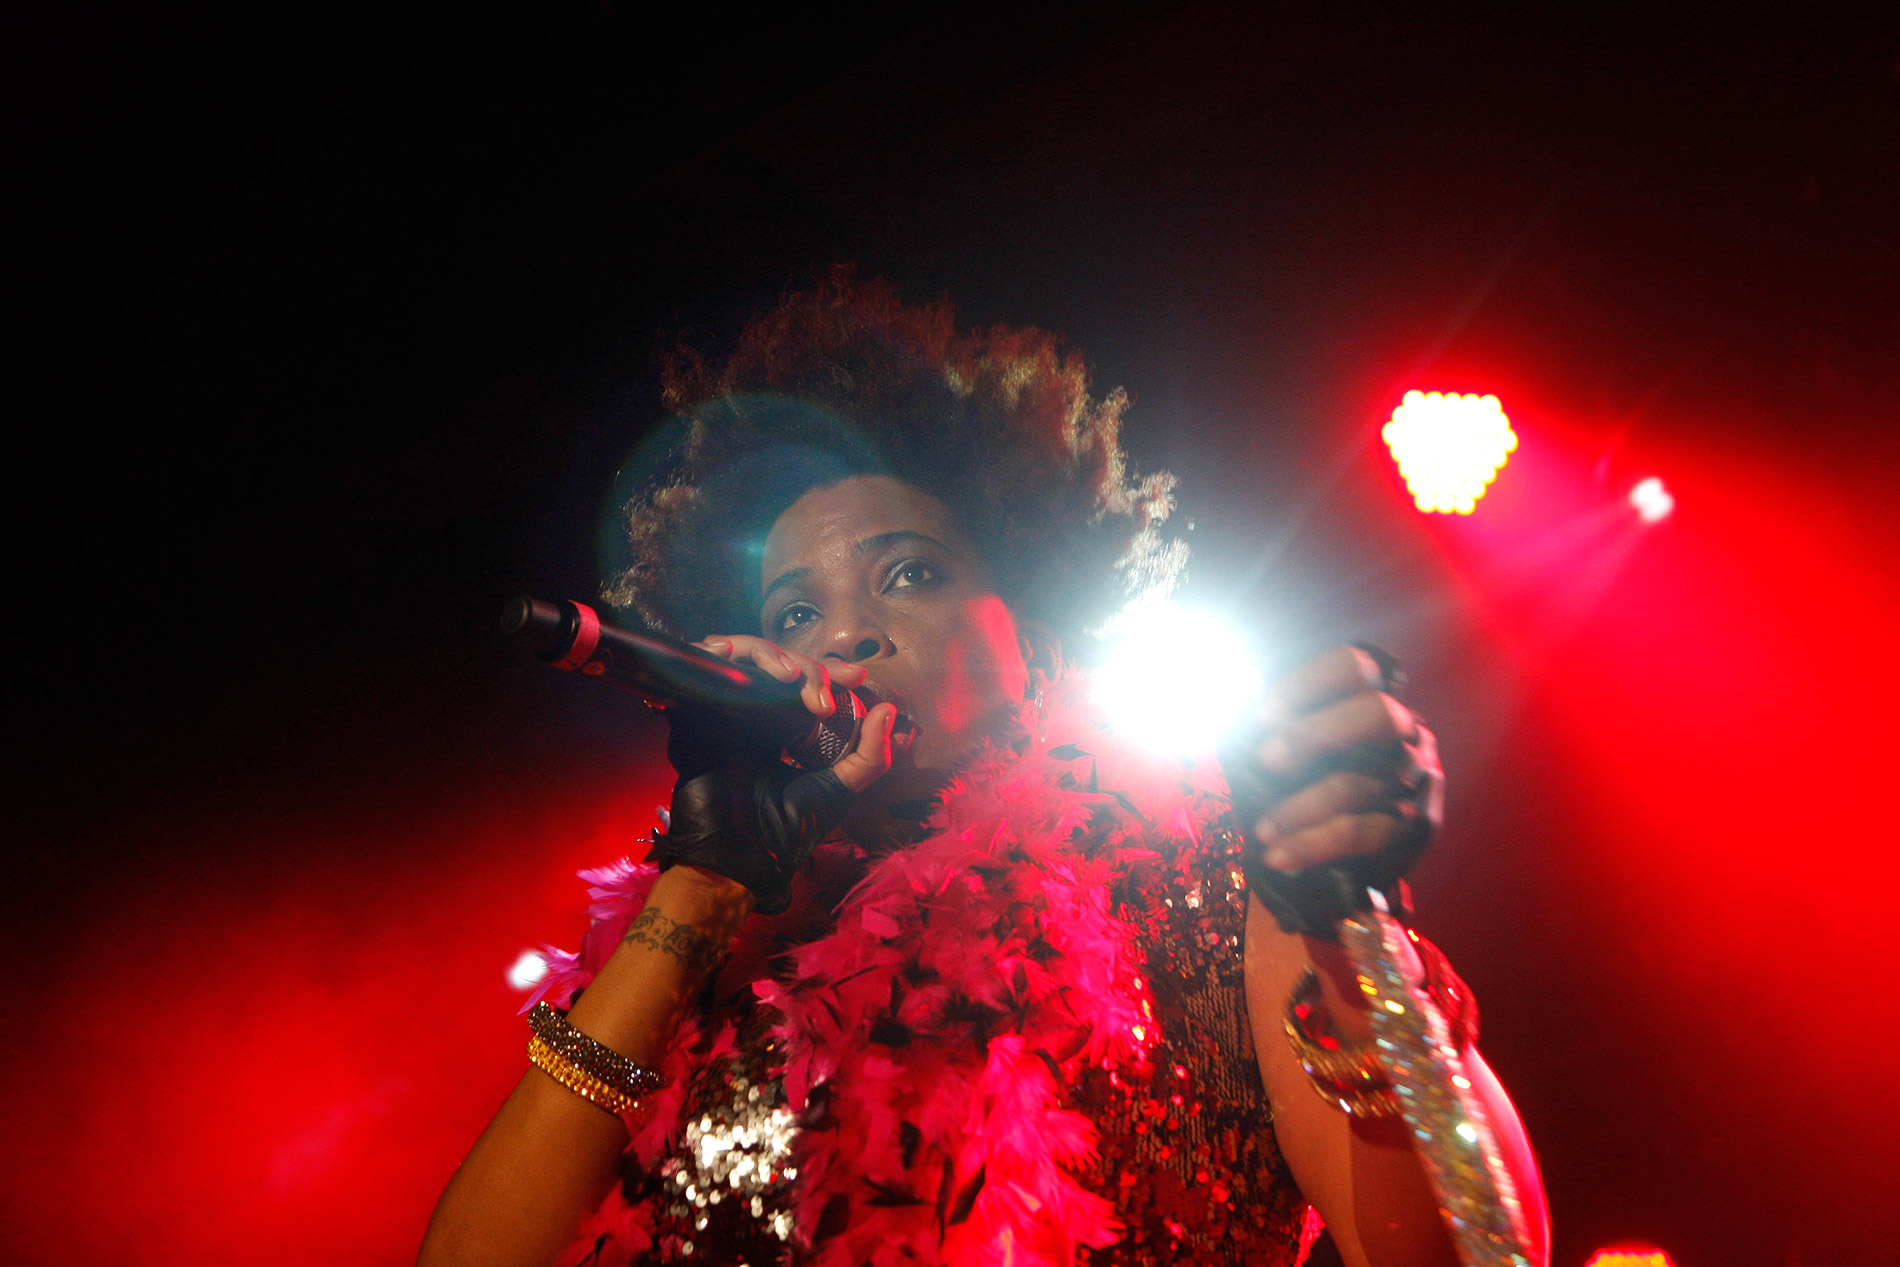 Macy Gray's perfromance at the Circus nightclub in Helsinki was top-notch. Picture: Tony Öhberg for Finland Today